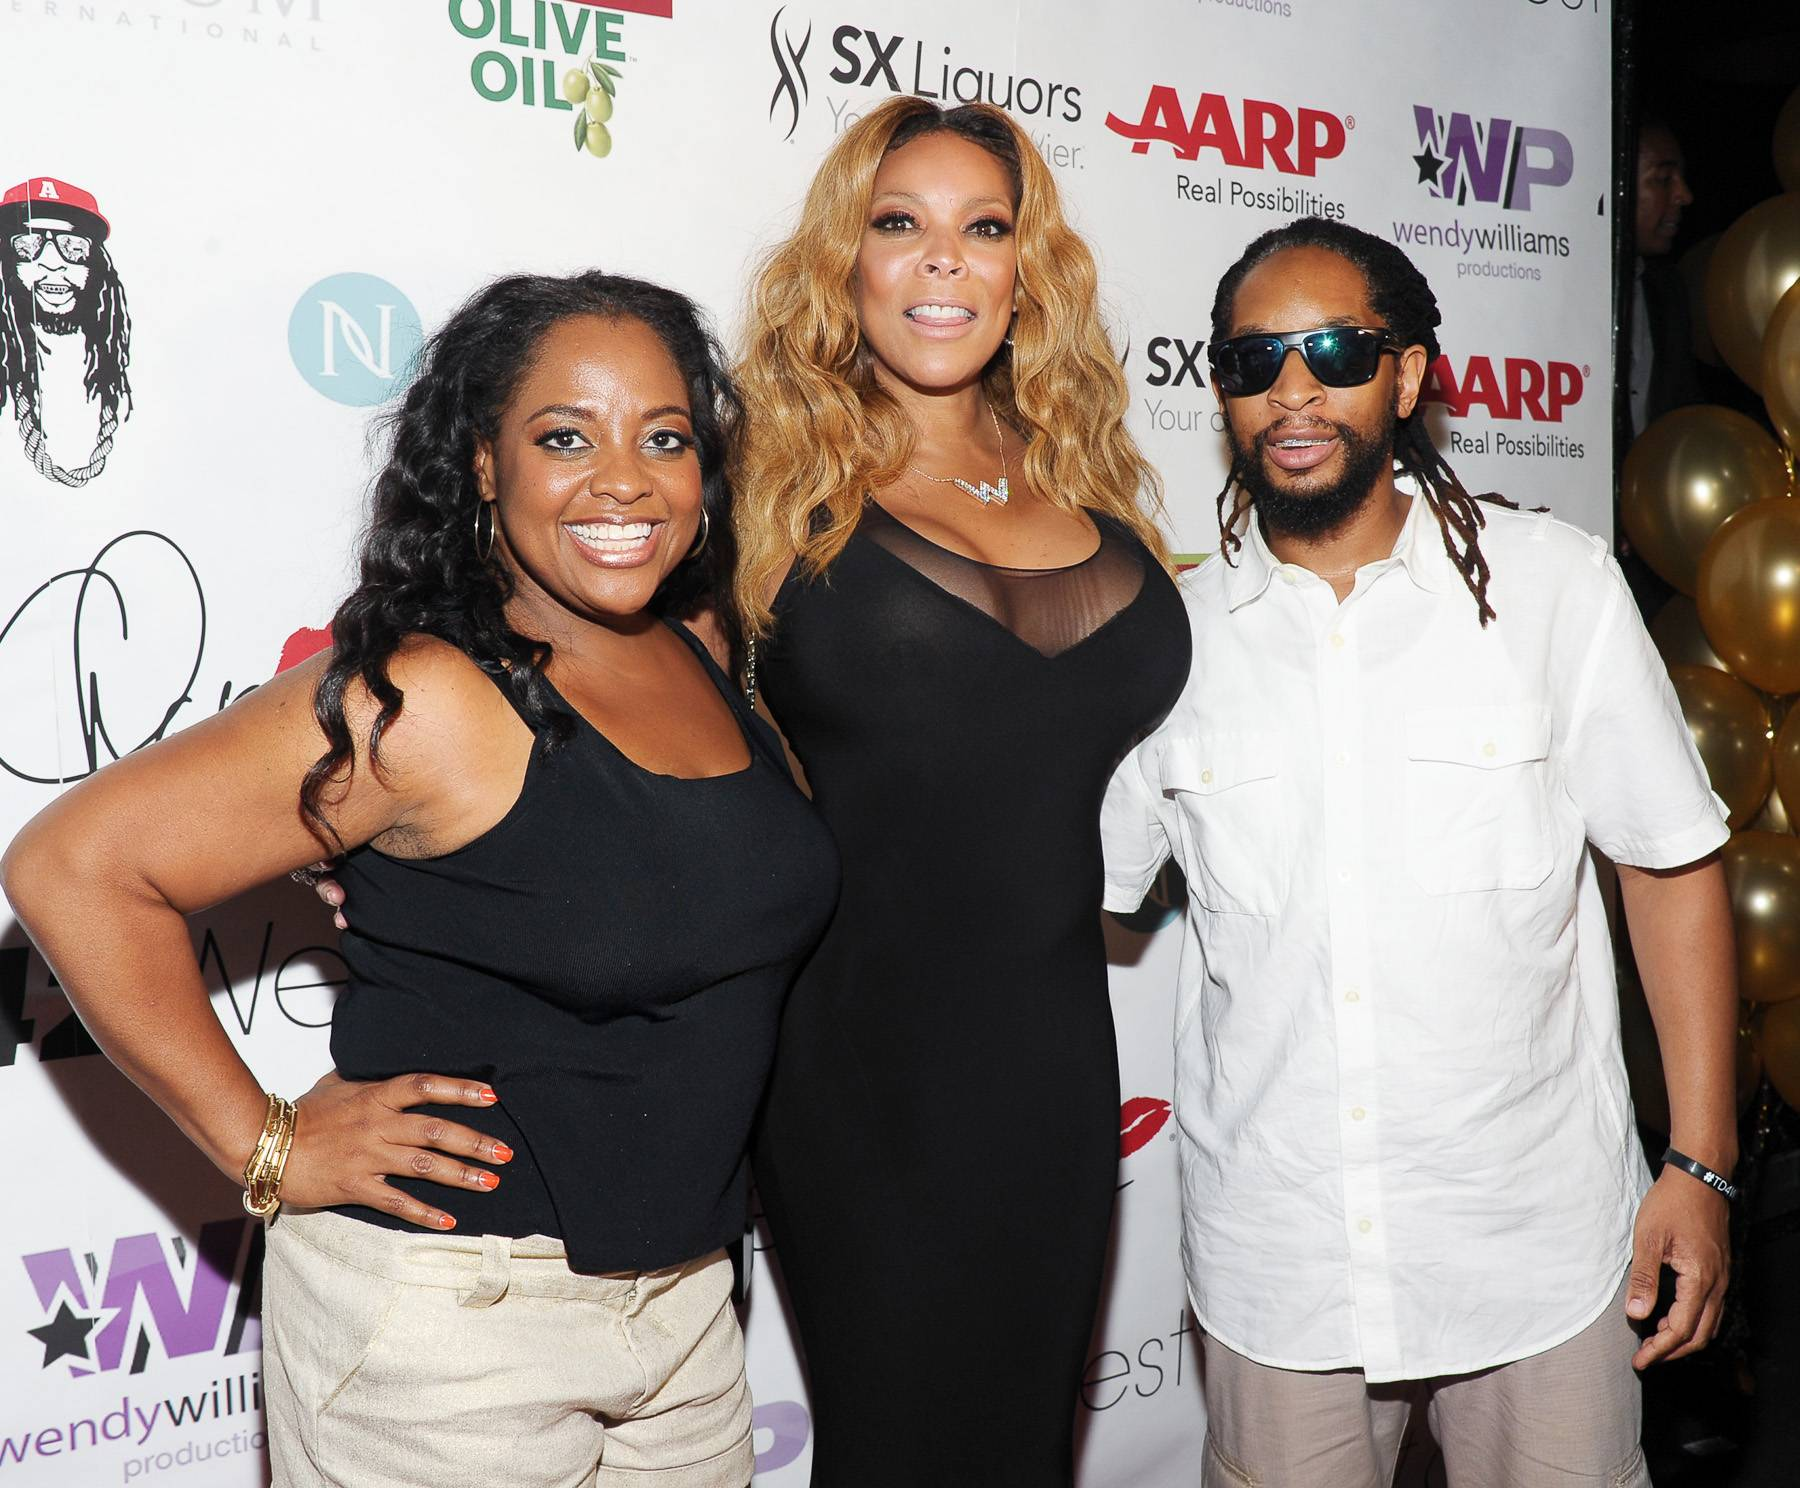 Wendy Is 50!  - Wendy Williams is 50 and fabulous! The Queen of All Media has been celebrating all month but the official bash took place last night in NYC. Guests like Shad Moss, Sherry Shepherd and Chaka Khan came out to show her some love.(Photo: Rommel Demano/Getty Images)